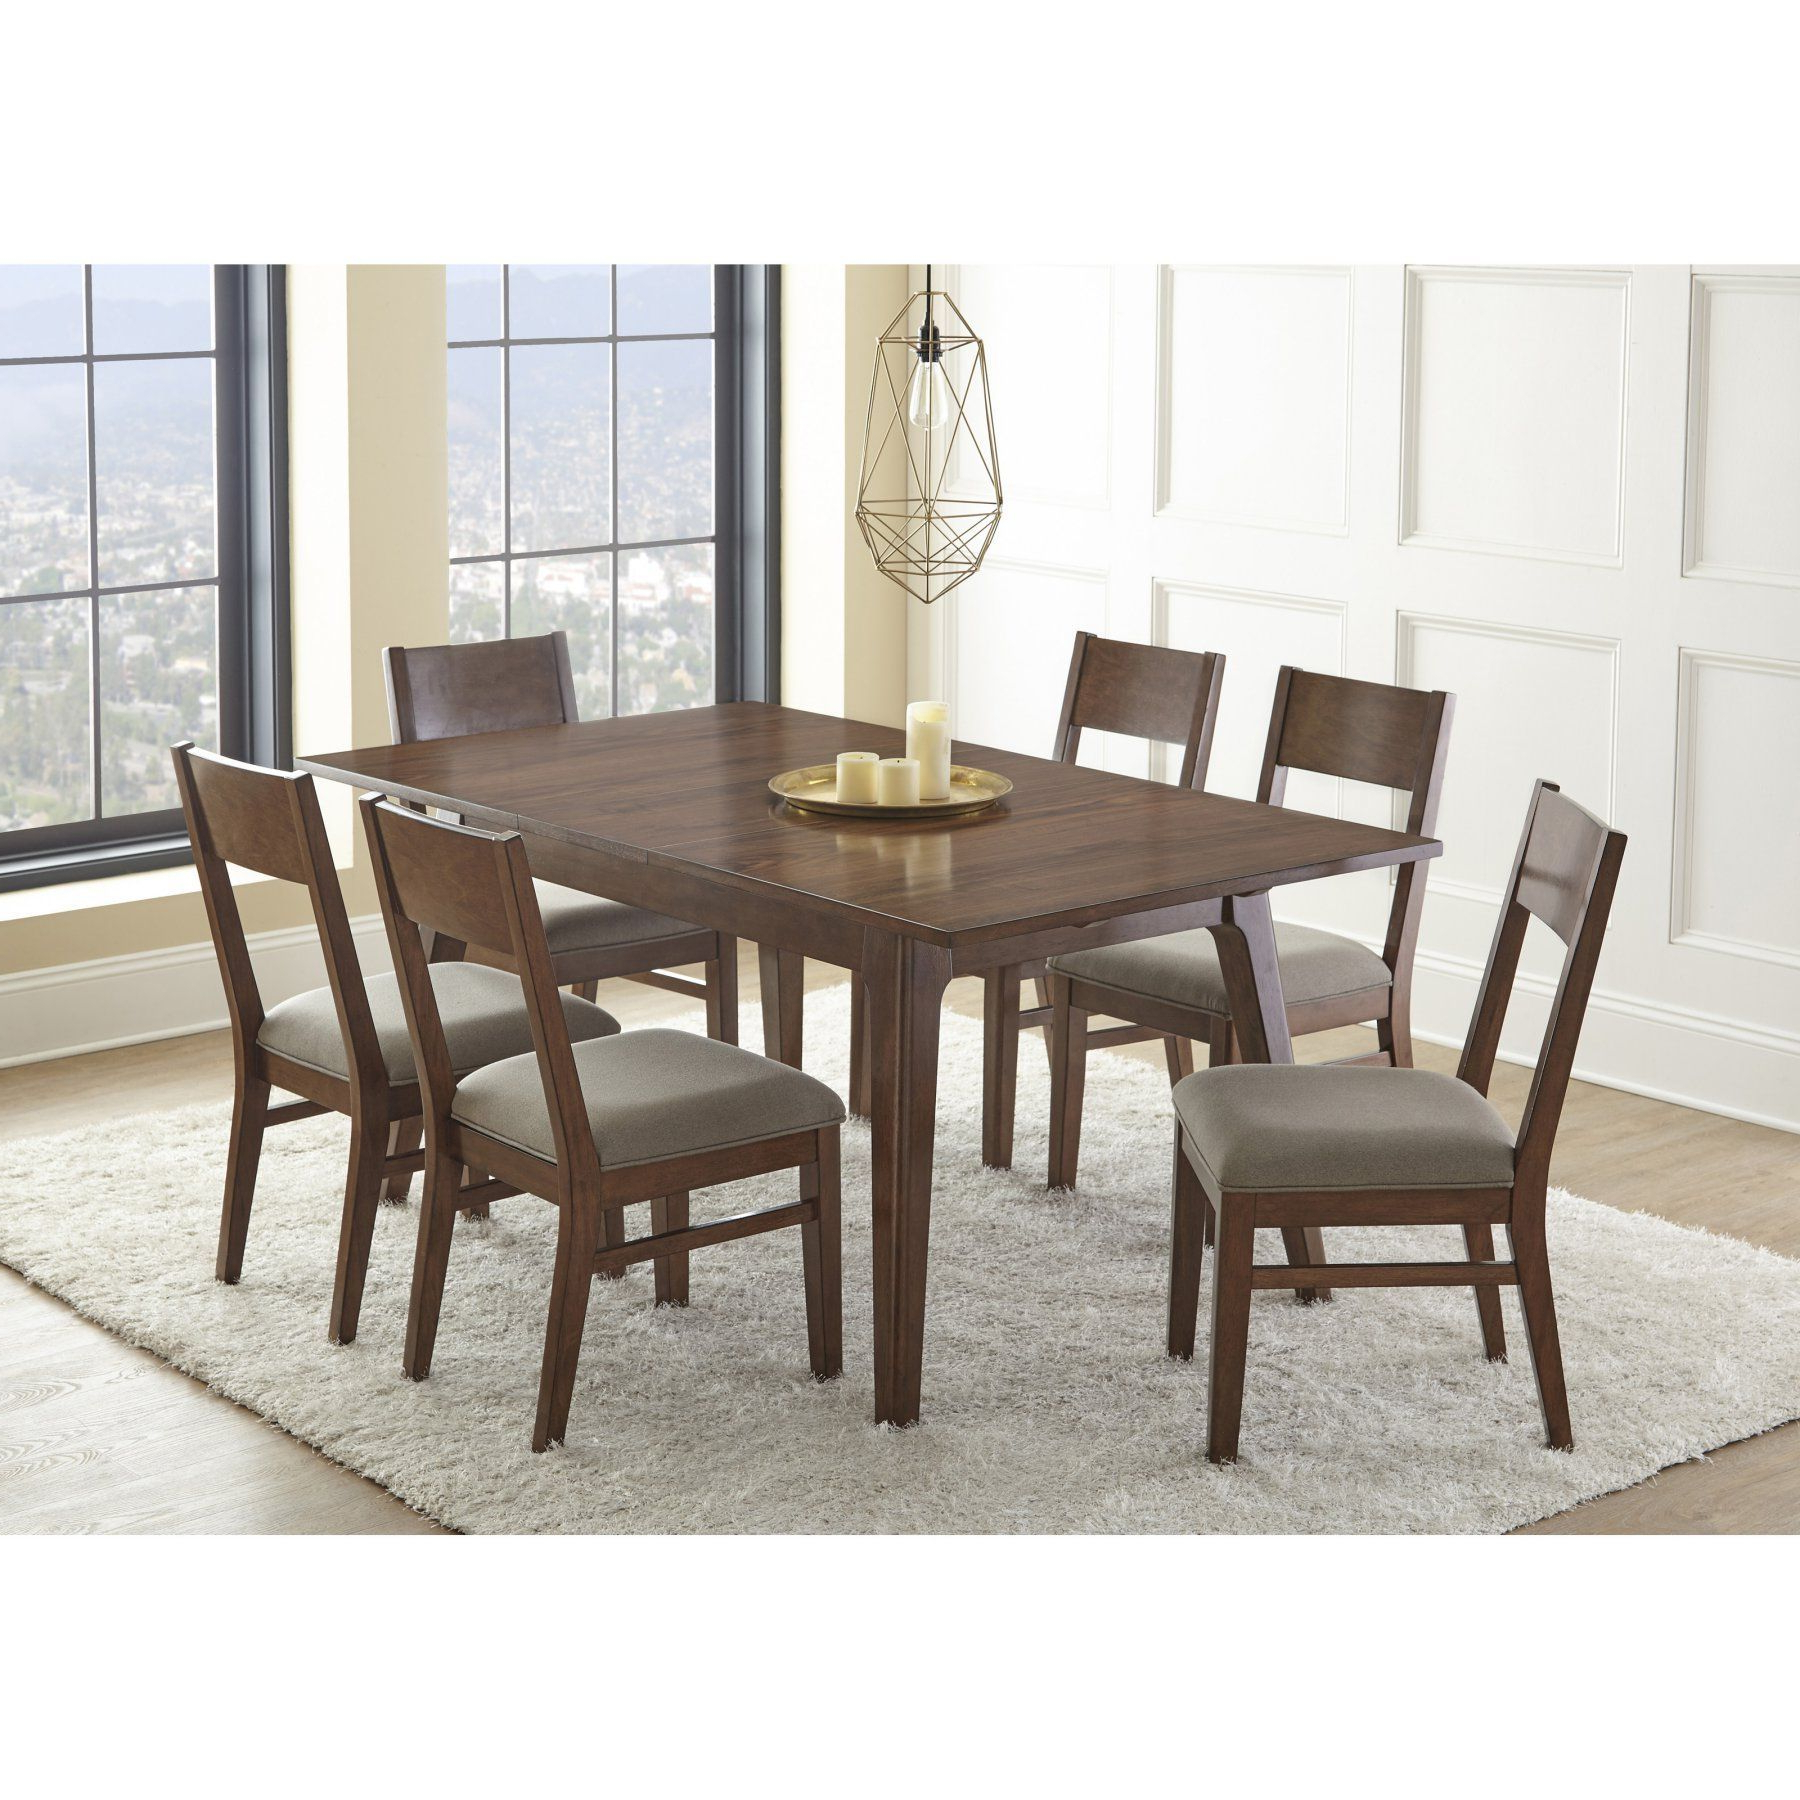 Well Known Steve Silver Co. Adeline 7 Piece Dining Table Set – Ssc2860 Regarding Atwood Transitional Rectangular Dining Tables (Gallery 24 of 30)